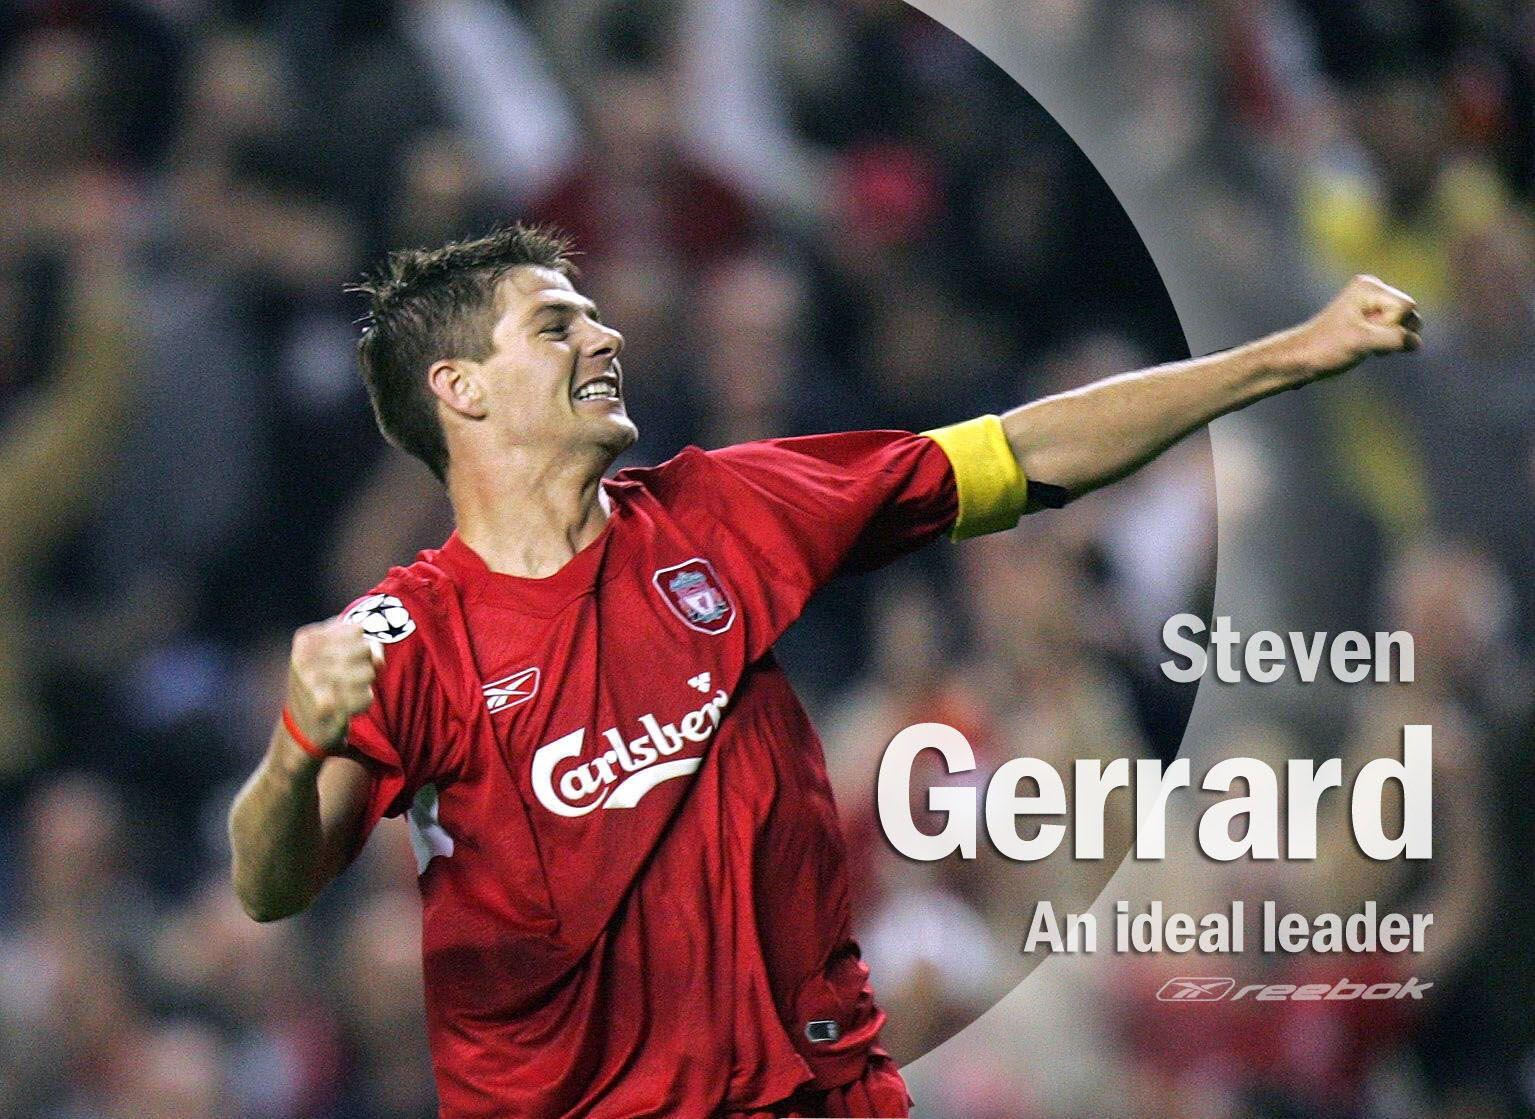 Freedom of Liverpool for Steven Gerrard